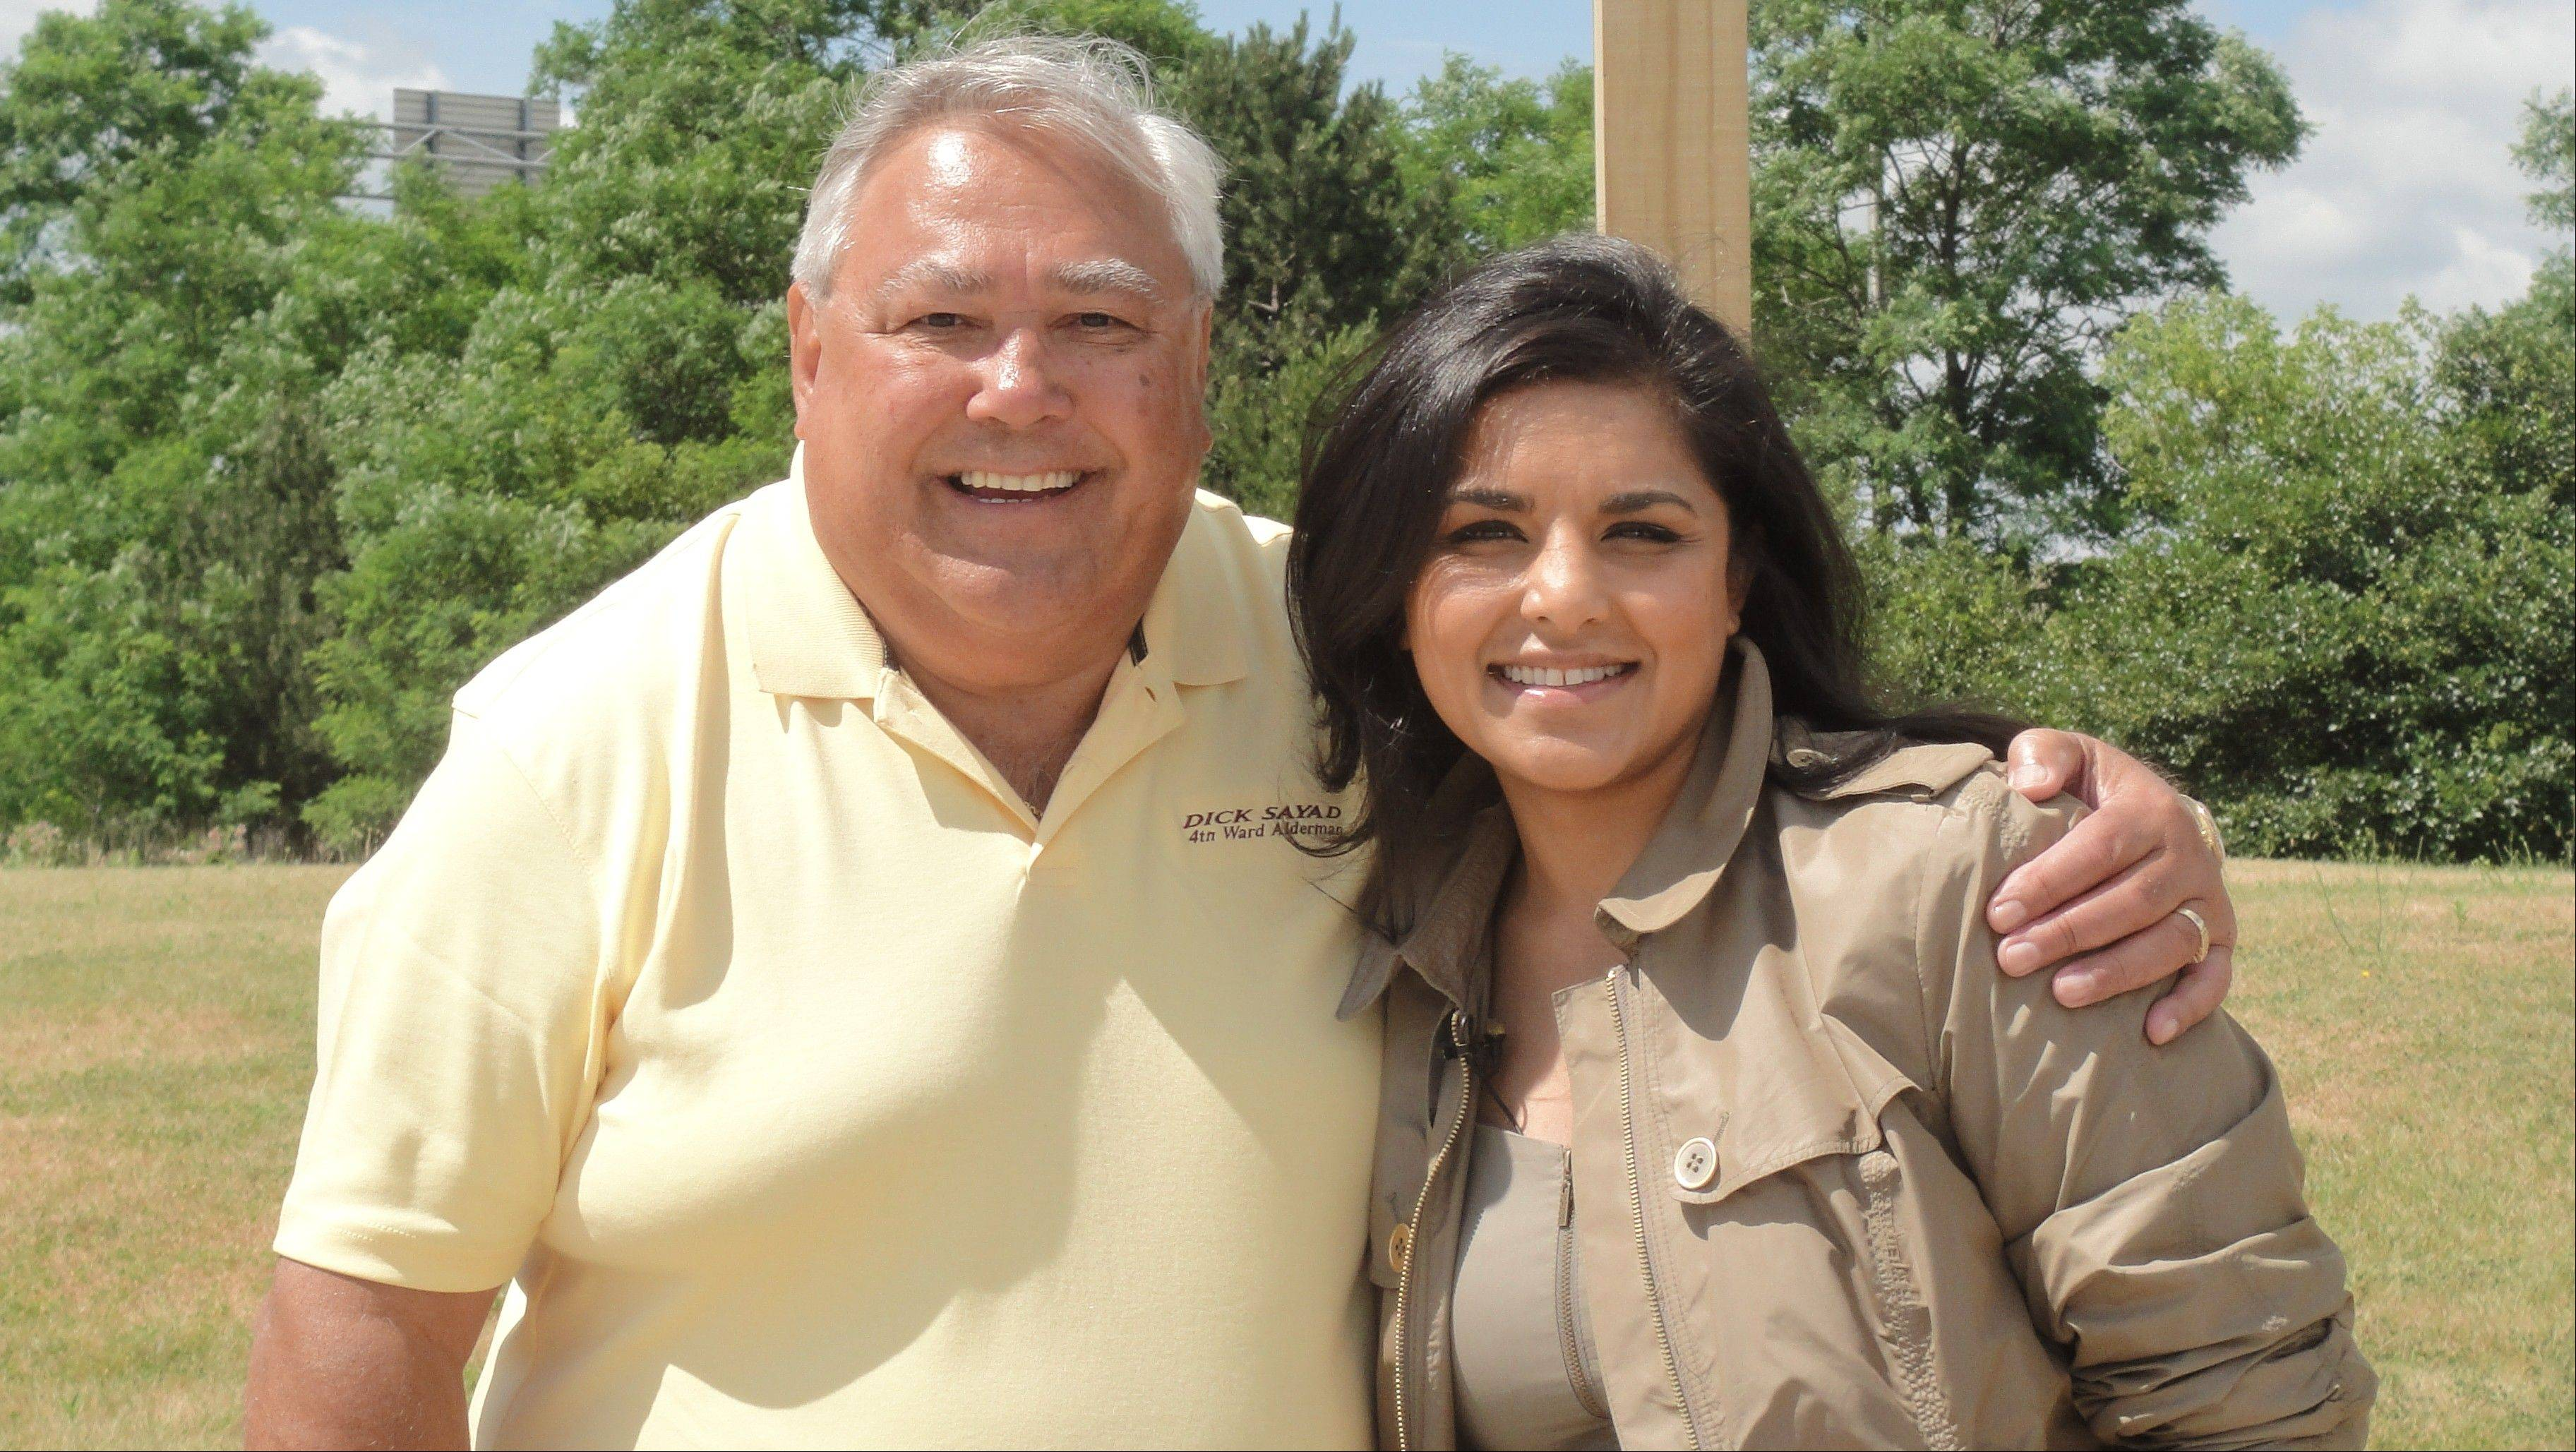 Des Plaines 4th Ward Alderman Dick Sayad poses with Alpana Singh, the host of �Check, Please!�